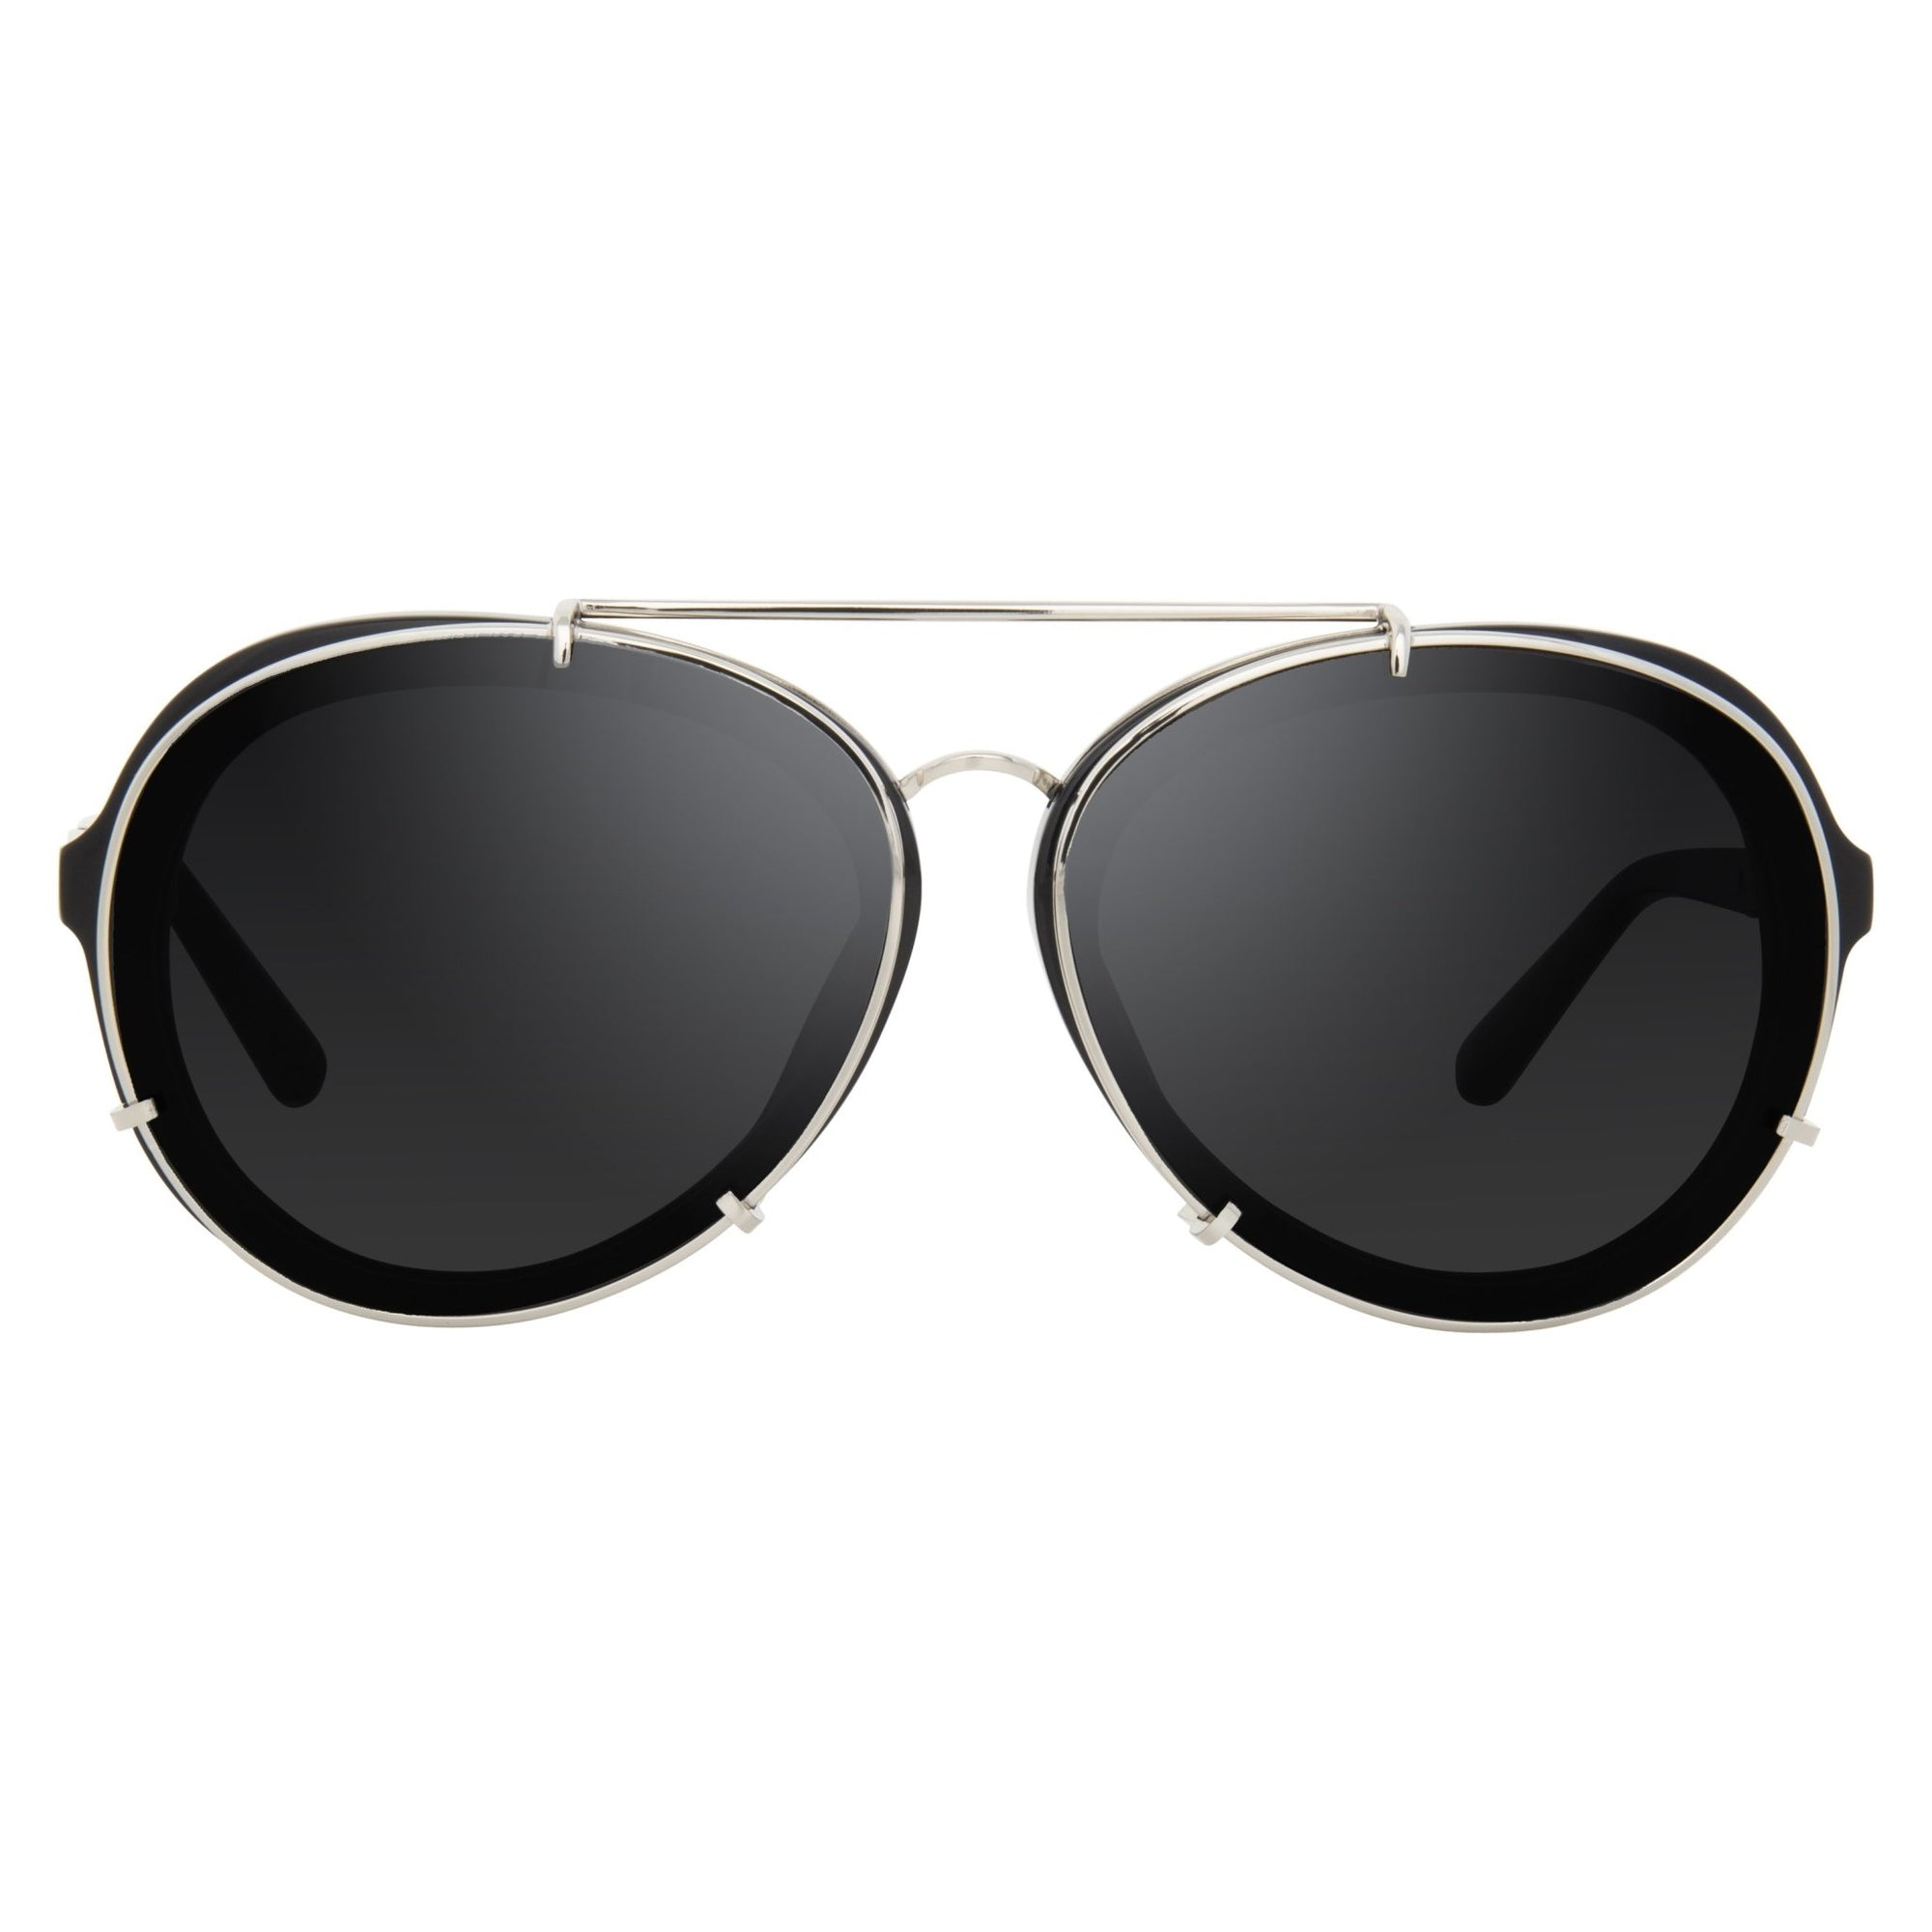 Phillip Lim Sunglasses Black and Silver Aviator with Bang Bang Black Lenses Category 4 - PL170C7SUN - Watches & Crystals